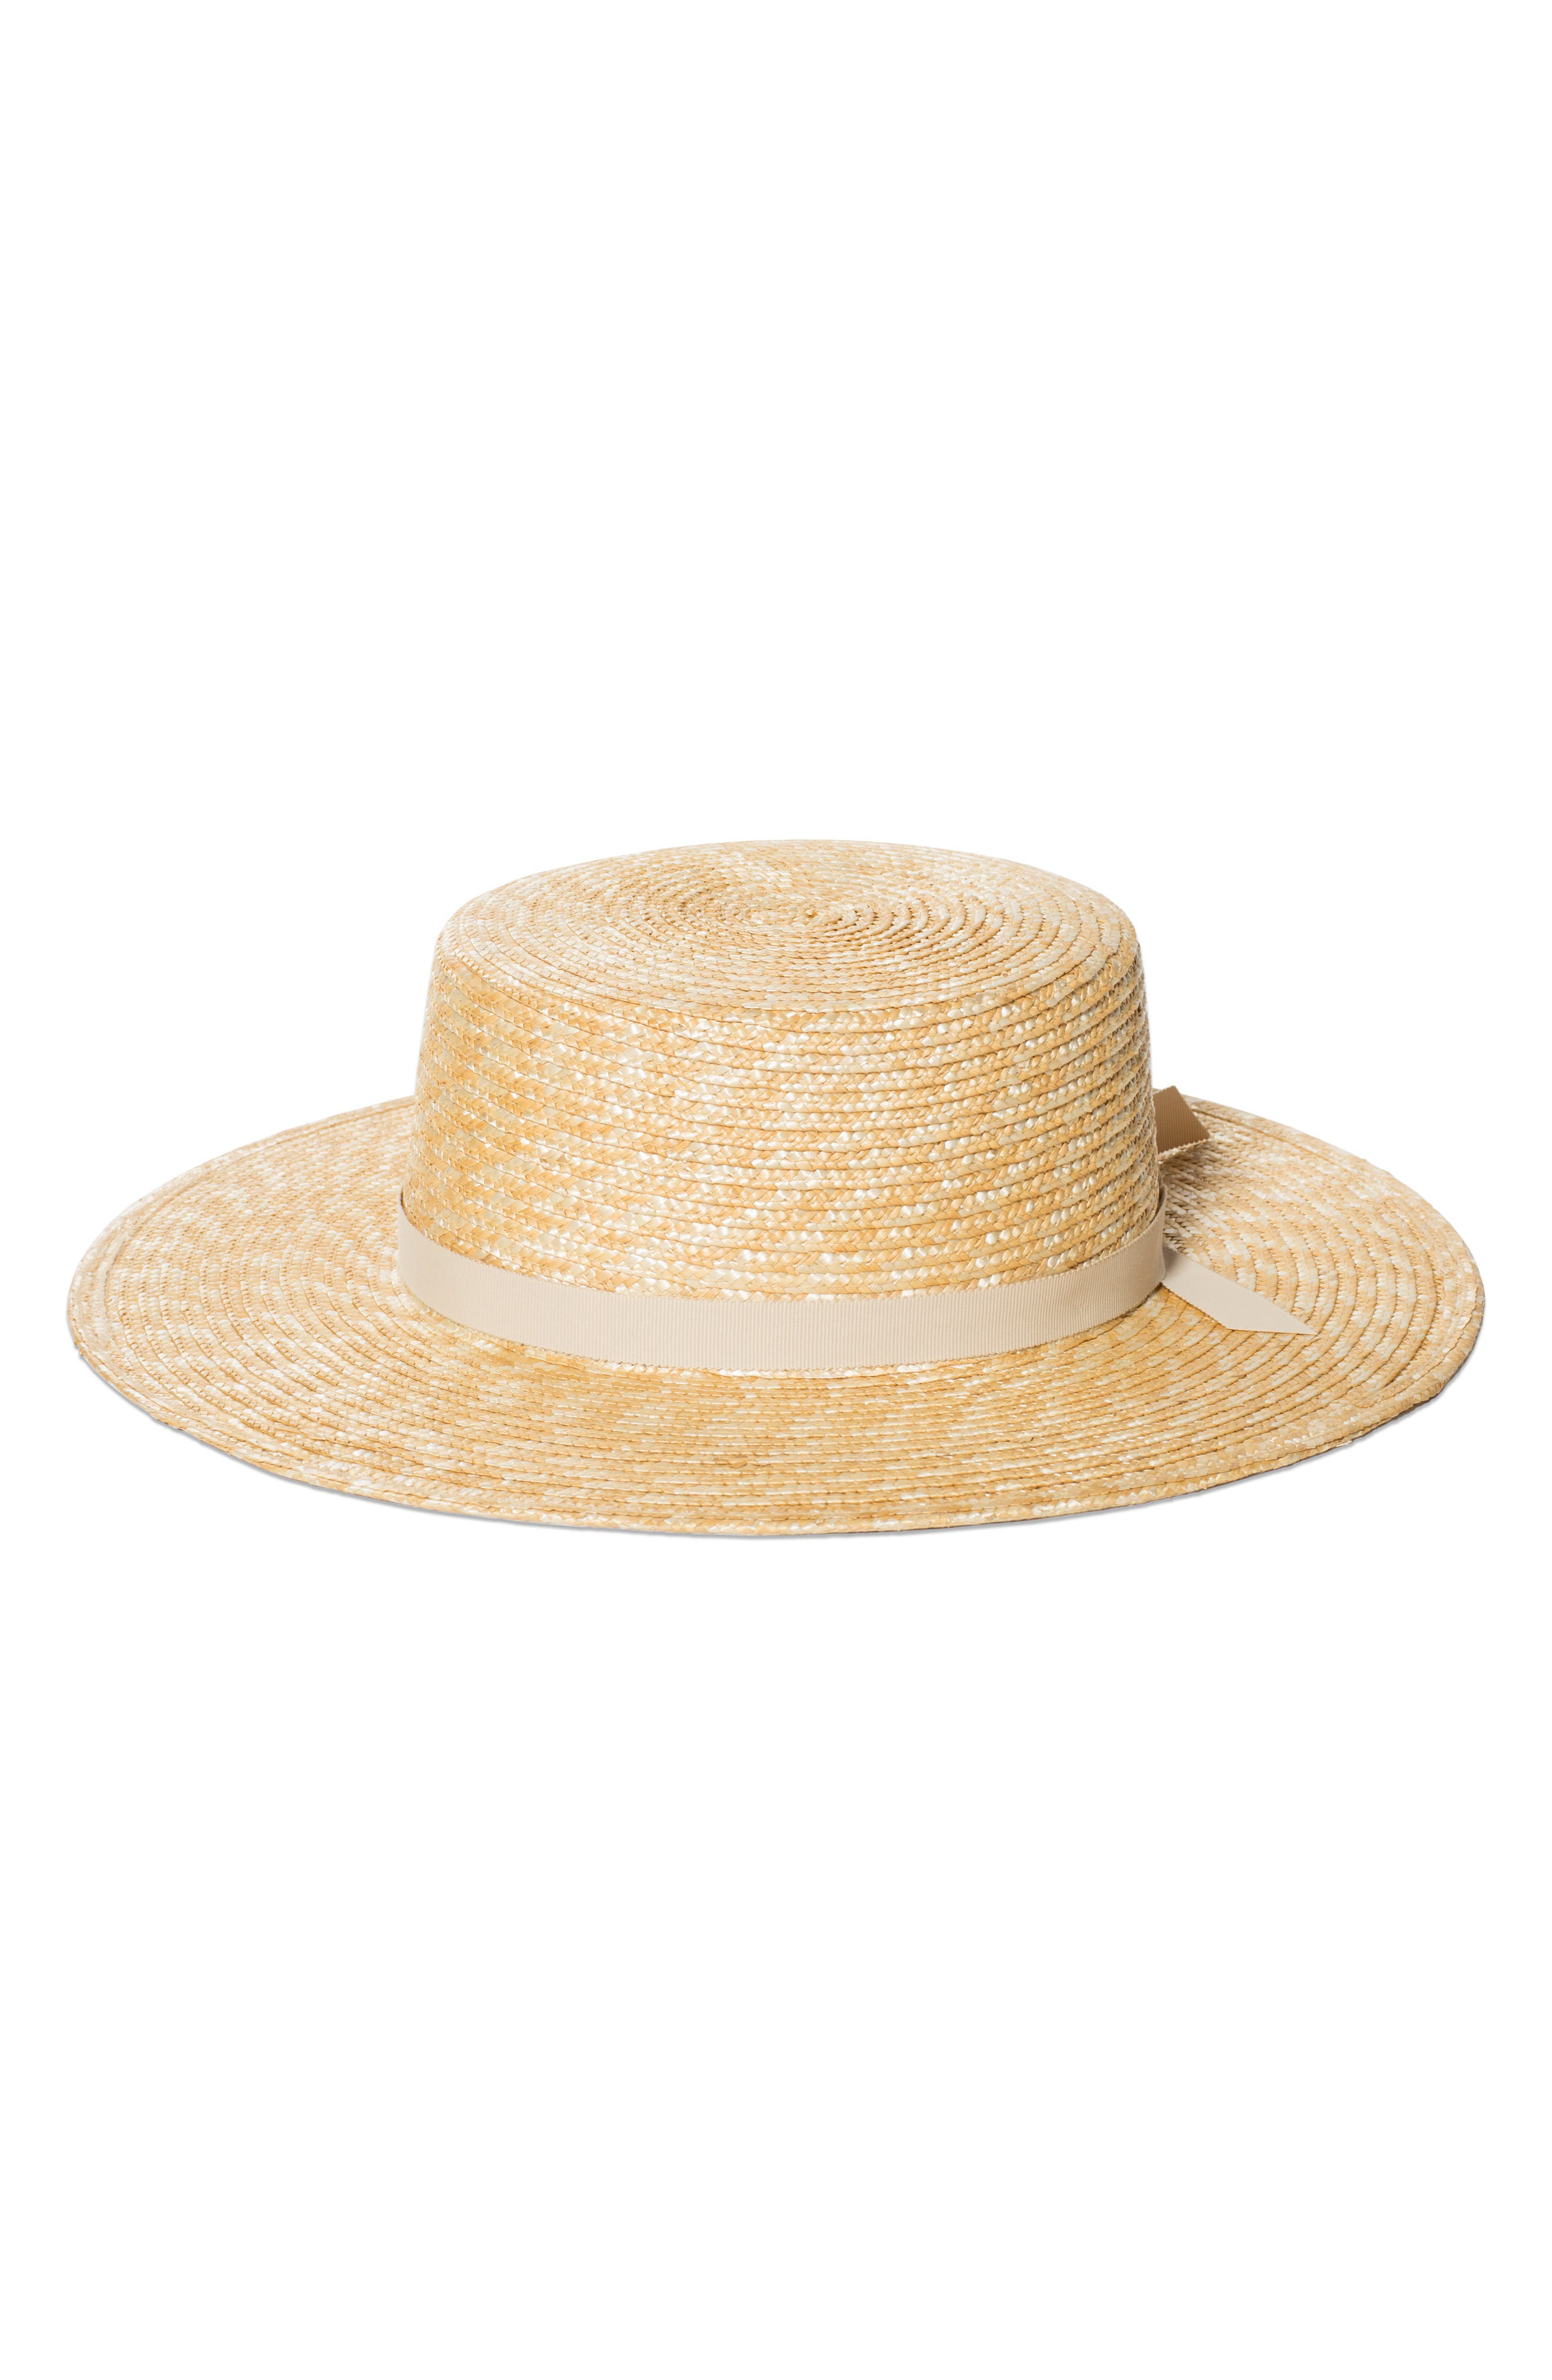 THE HIGHLAND STRAW BOATER HAT - BEIGE